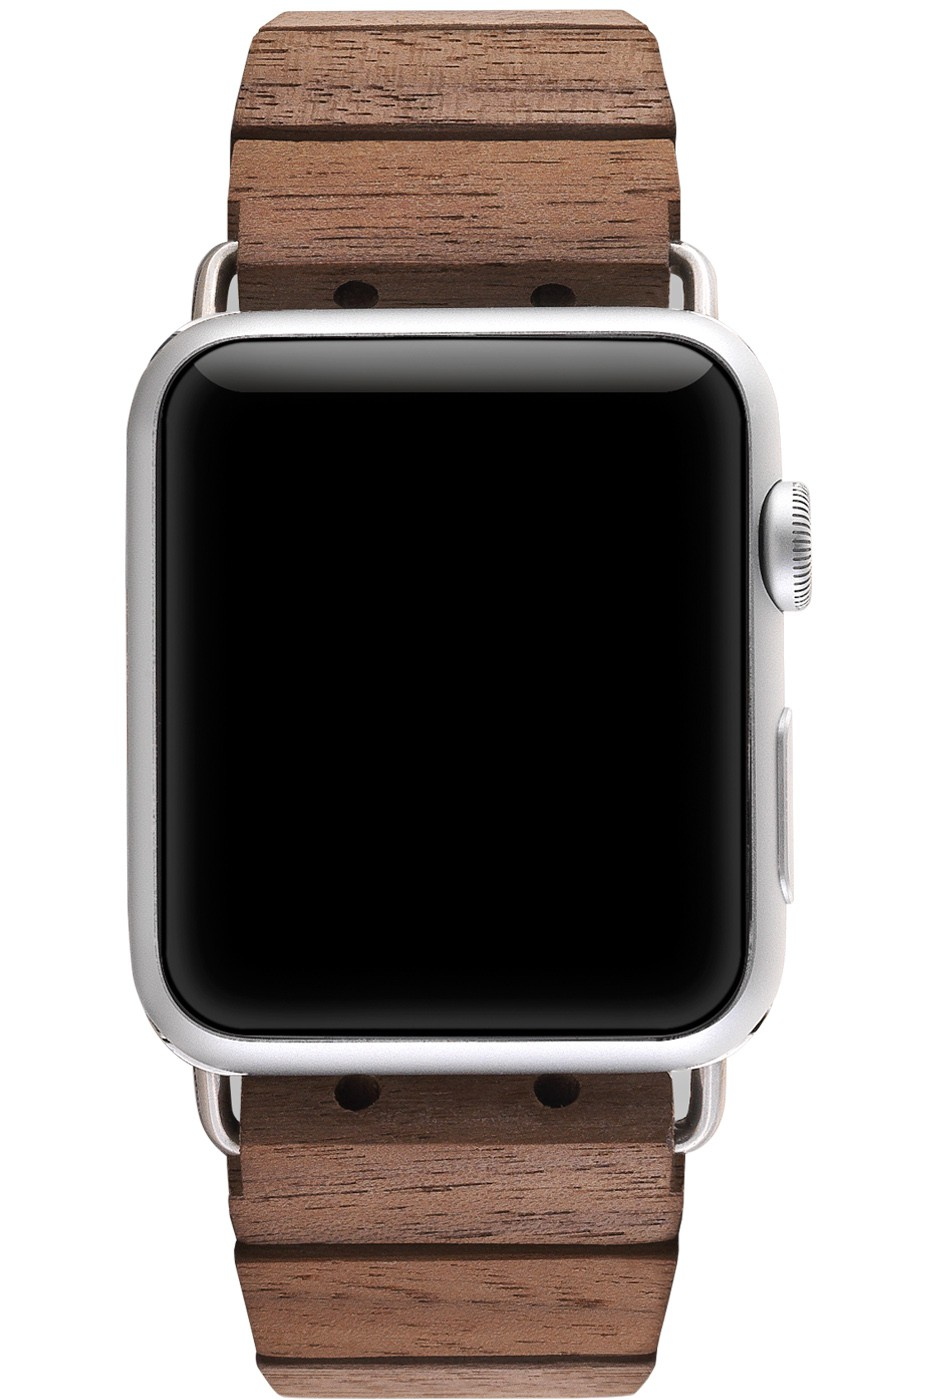 Trift (42mm Apple Watch)